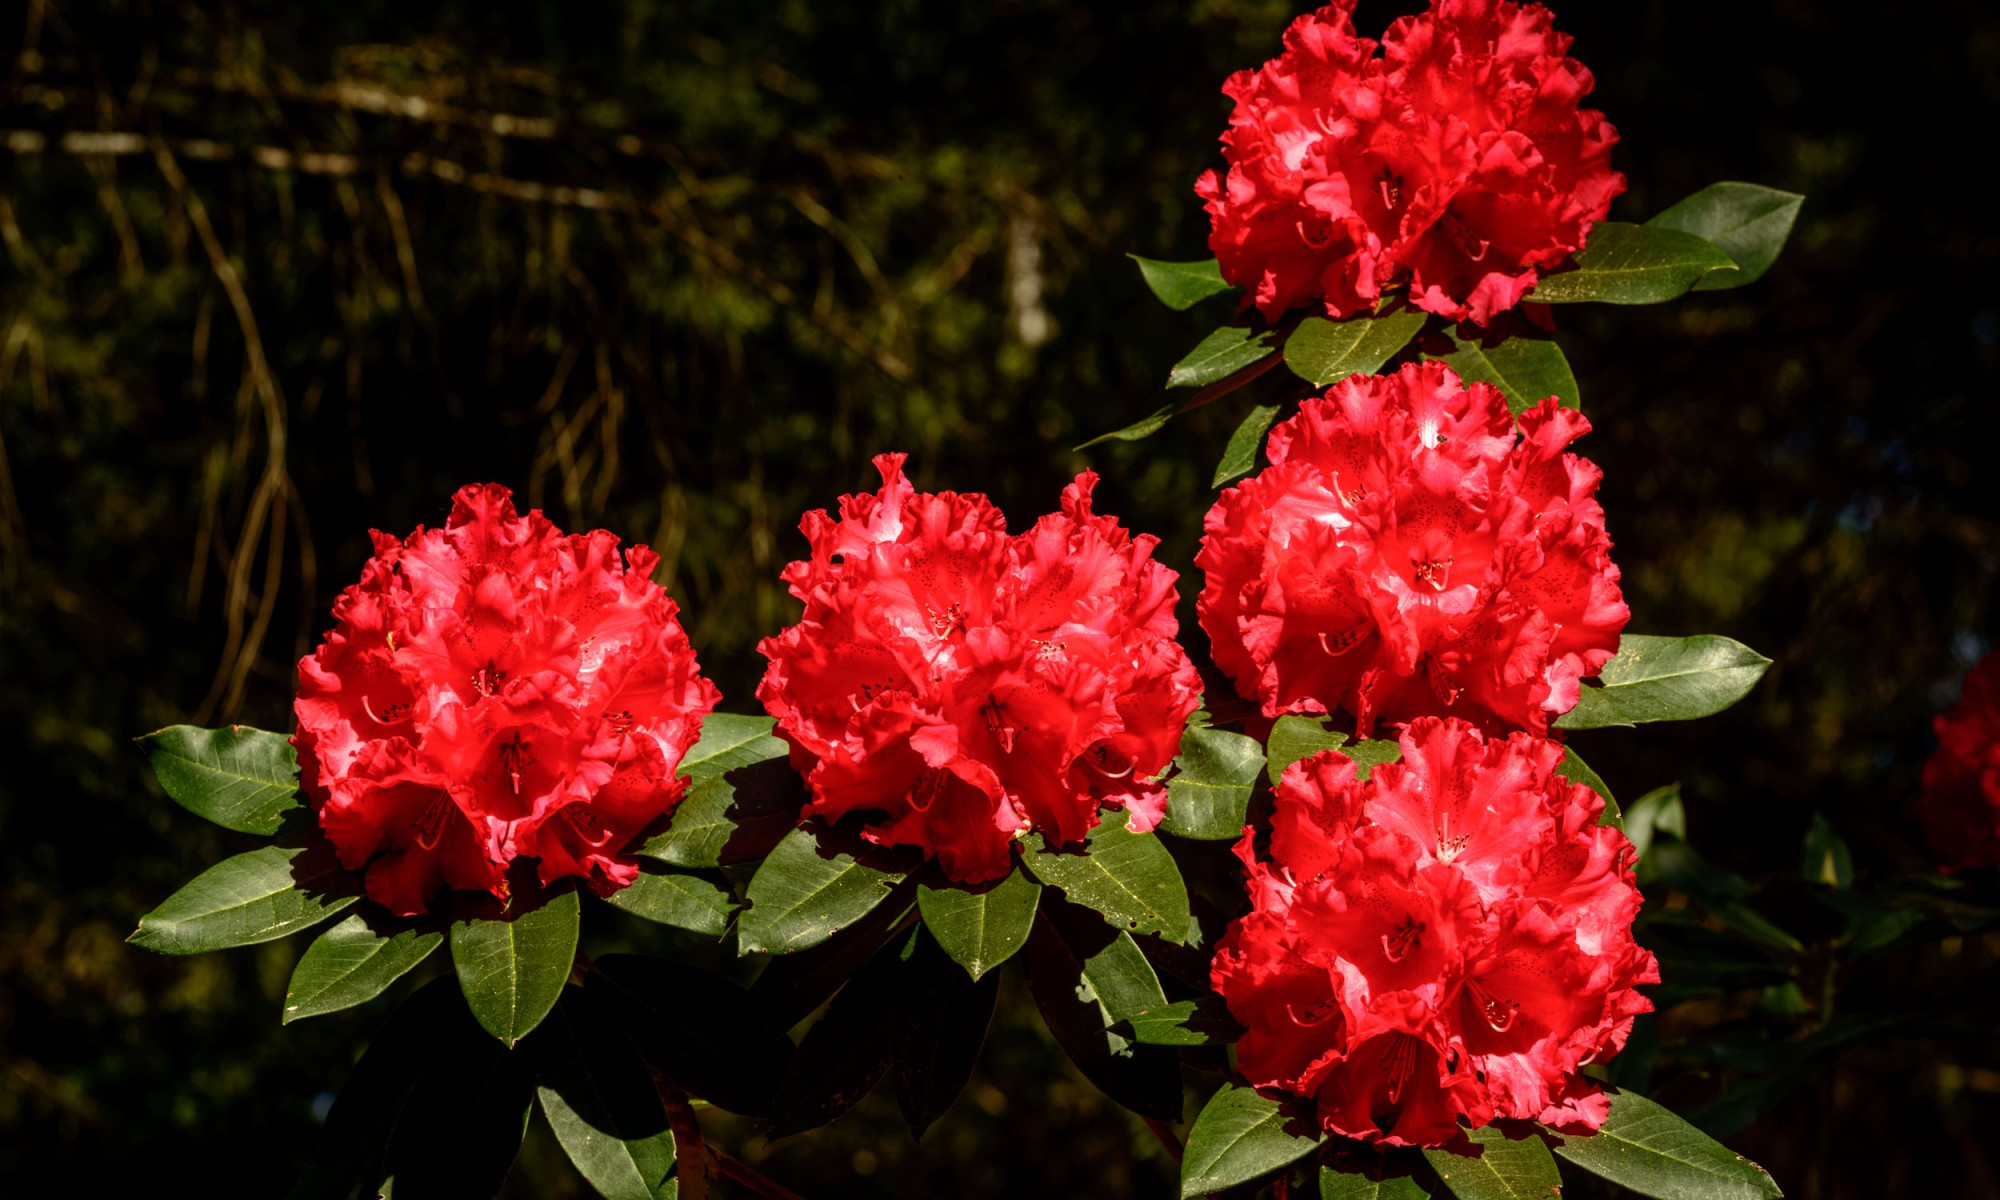 masses of bright red Rhododendron flowers in super high resolution